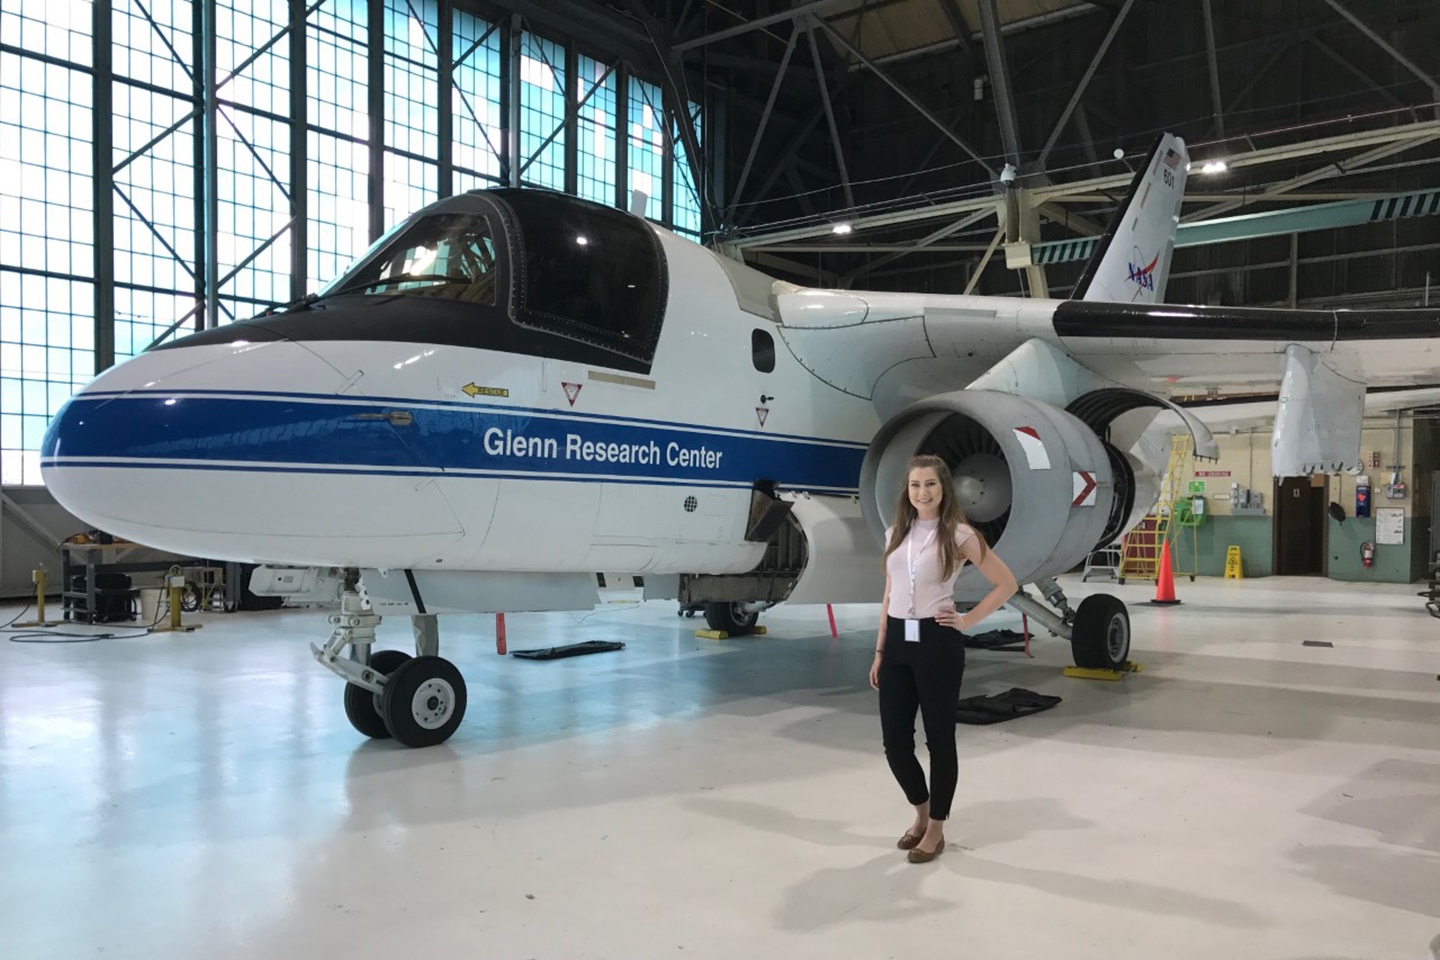 NASA Intern Ashley Weiss